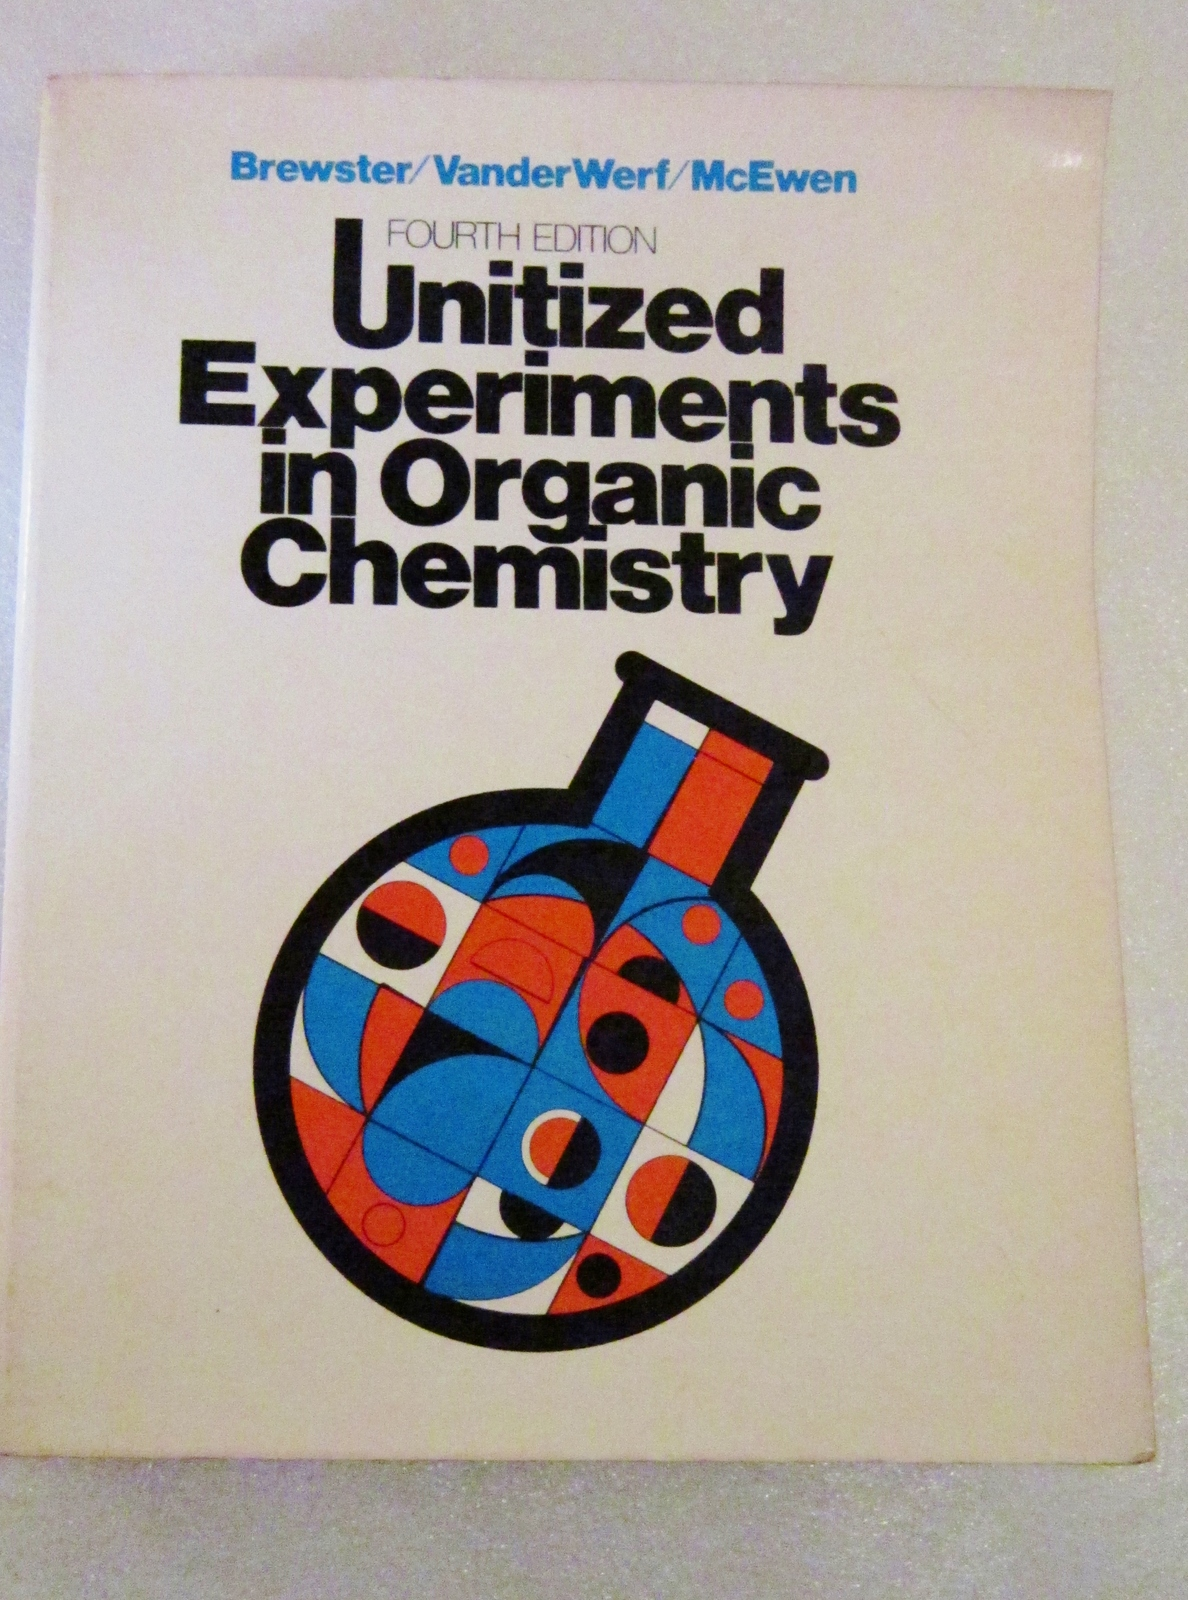 Primary image for Unitized Experiments in Organic Chemistry 1977 Brewster, VanderWerf